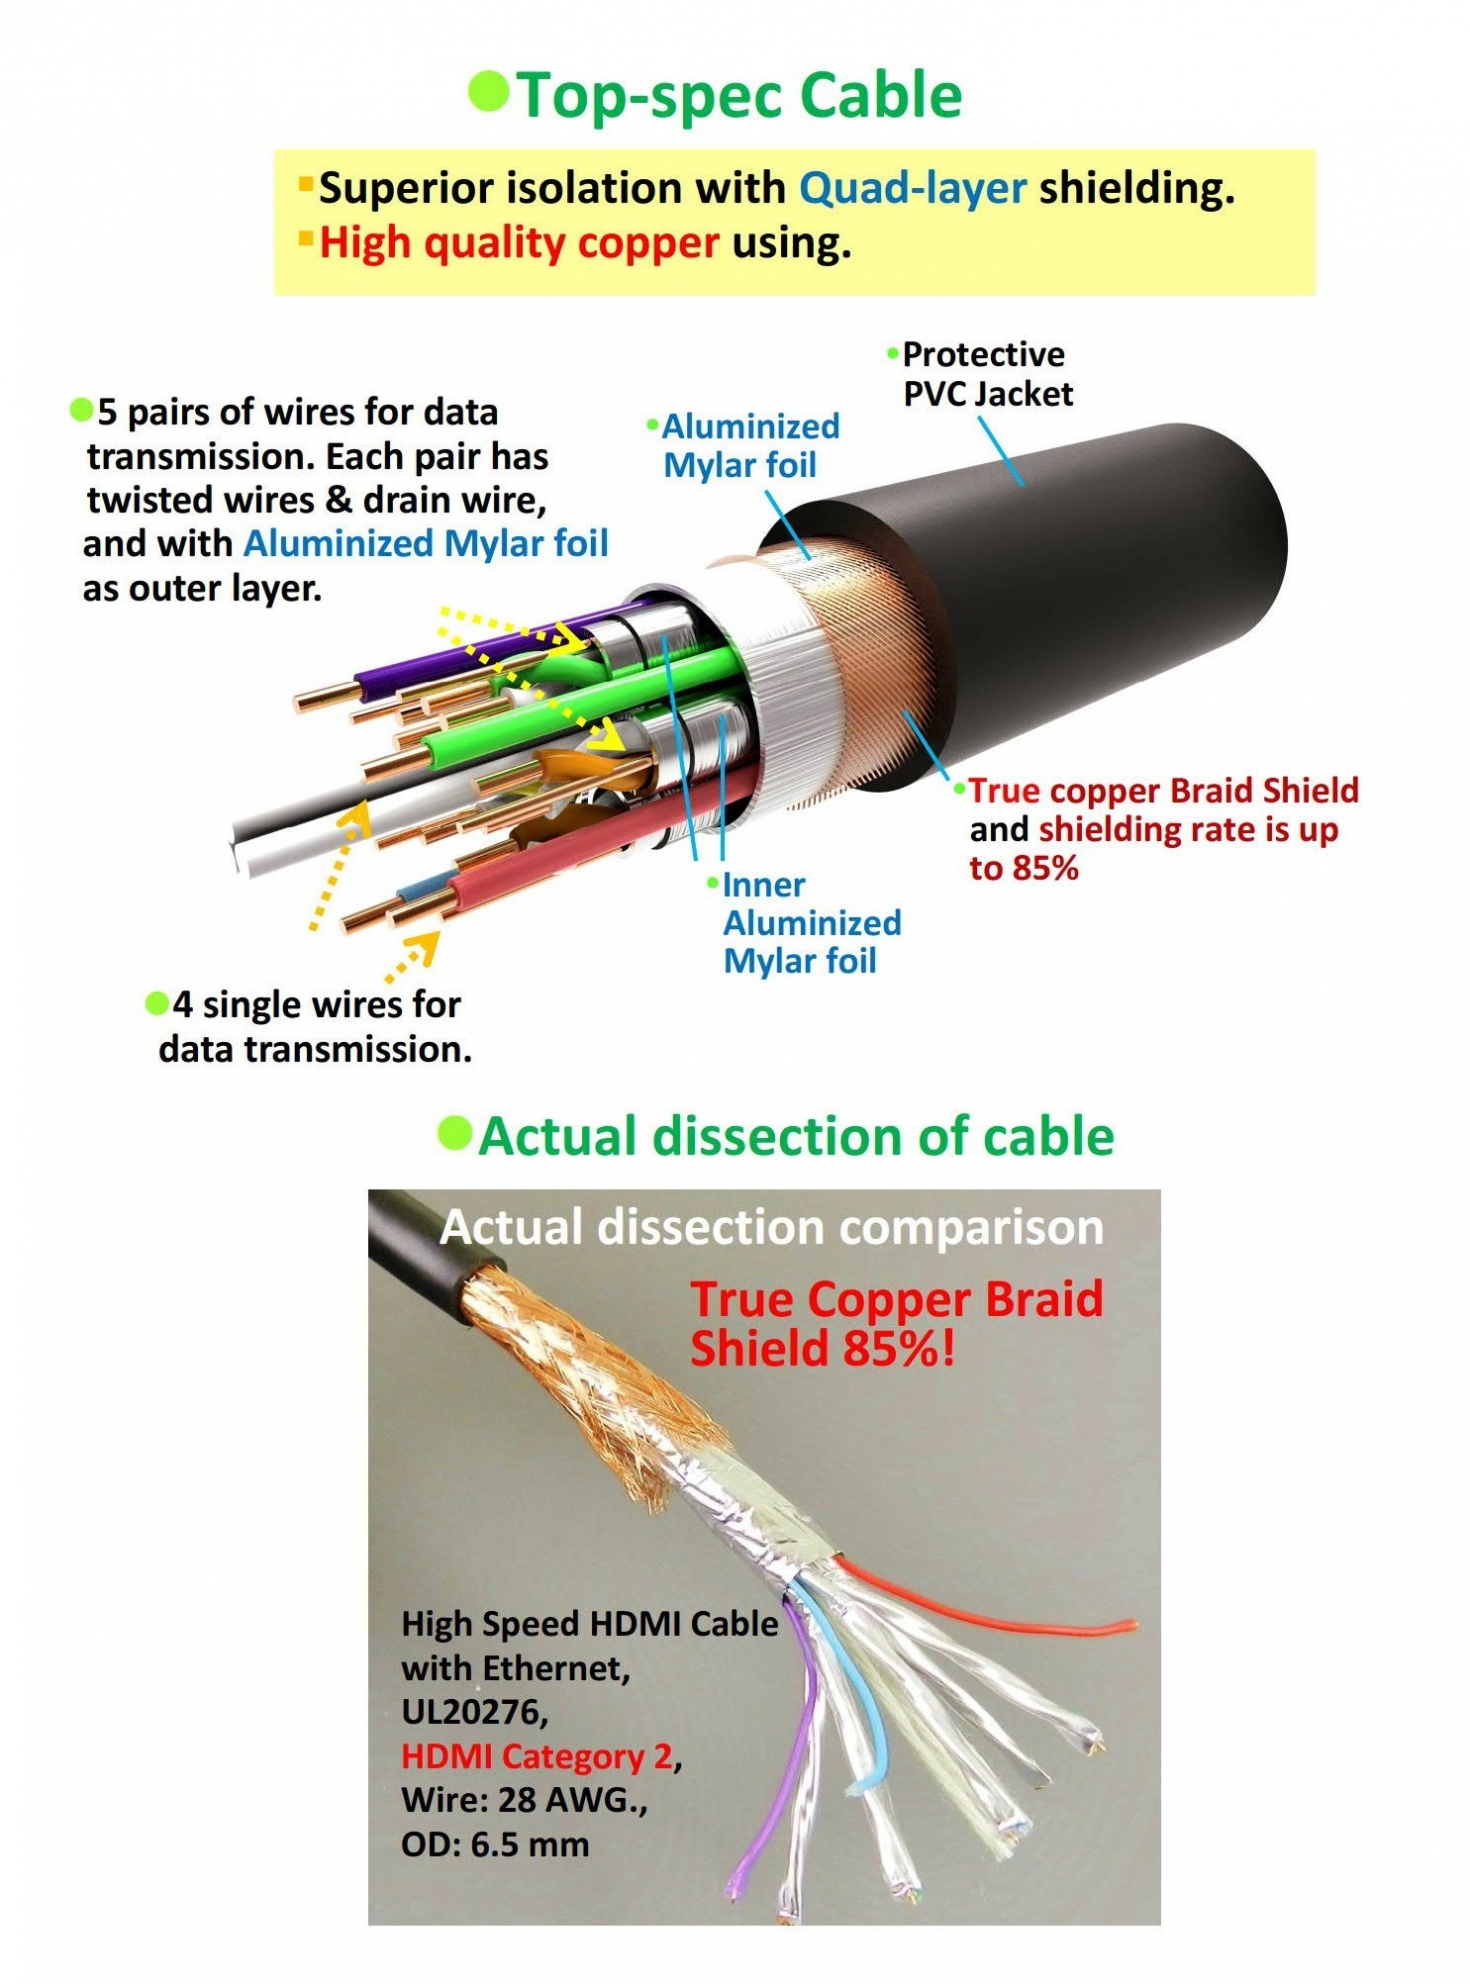 Wiring Diagram Hdmi Cable Inspirationa Hdmi To Rca Cable Wiring - Hdmi To Rca Cable Wiring Diagram